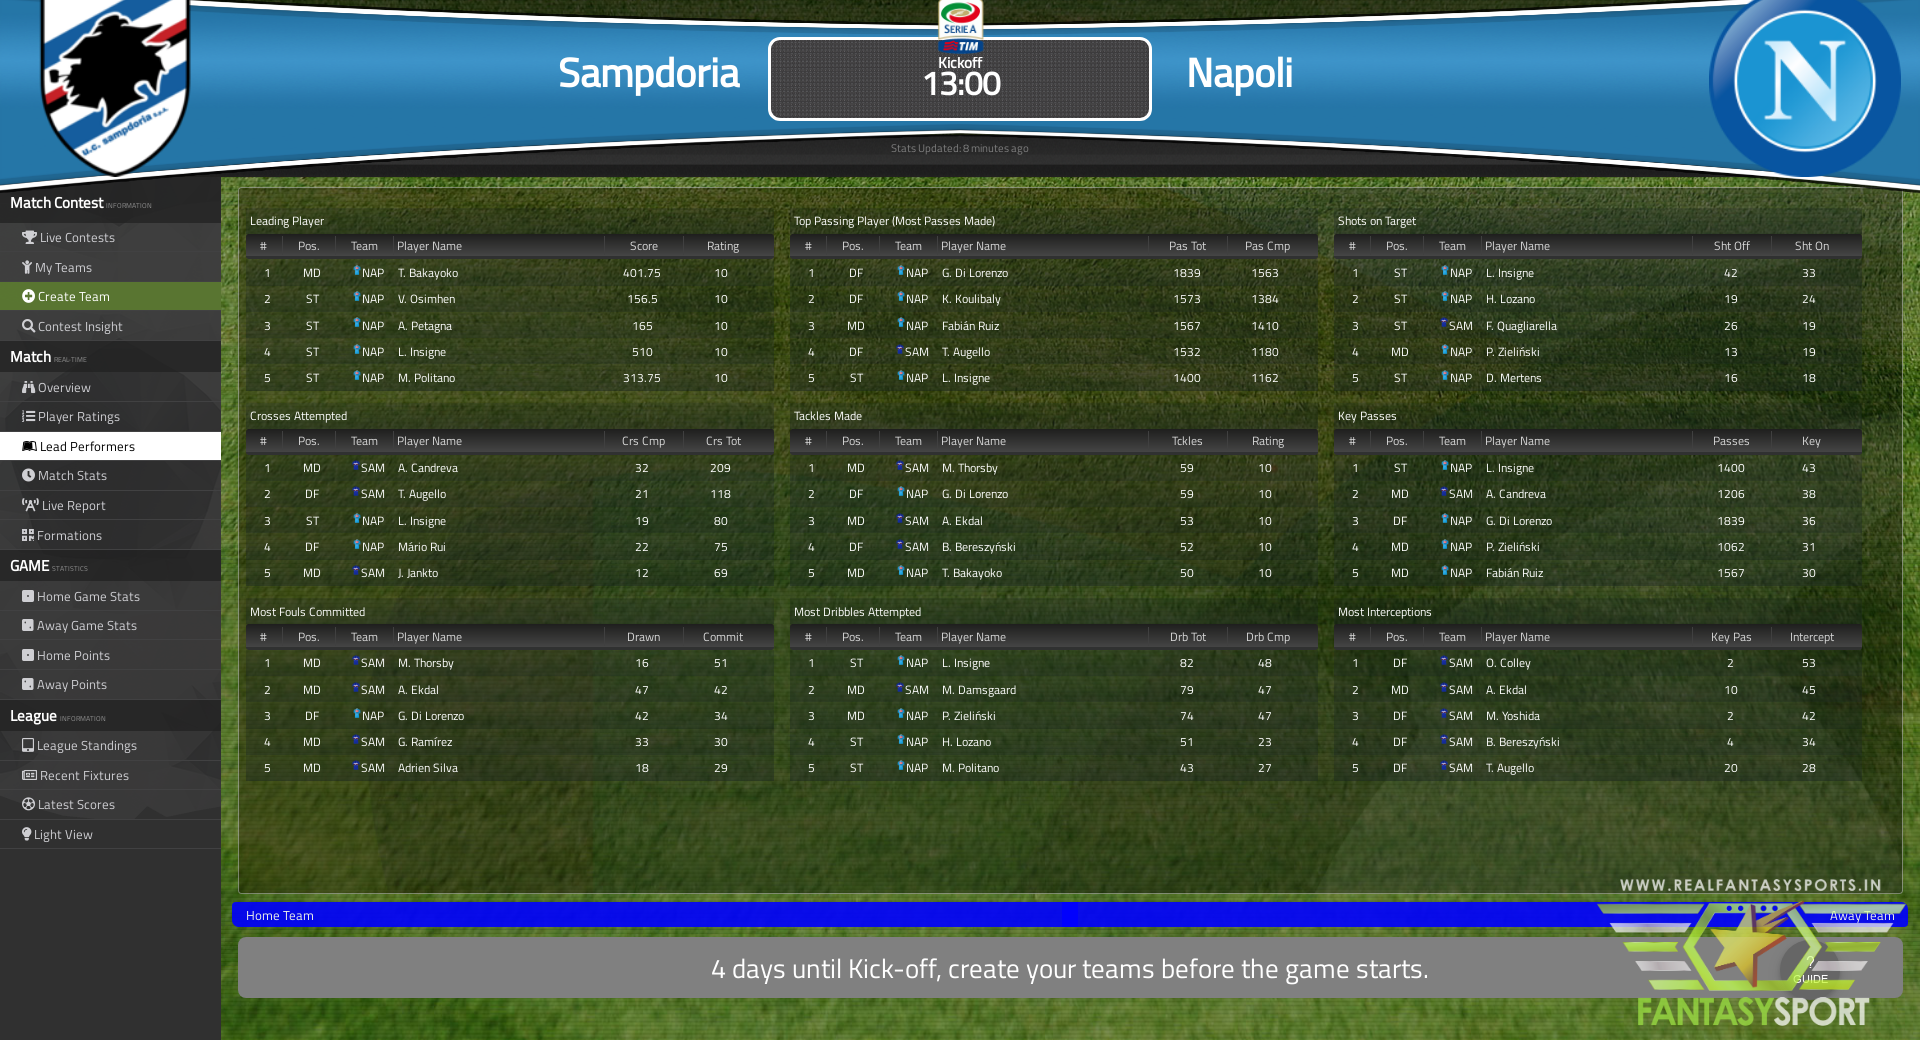 Dream Team Pick For Sampdoria Vs Napoli